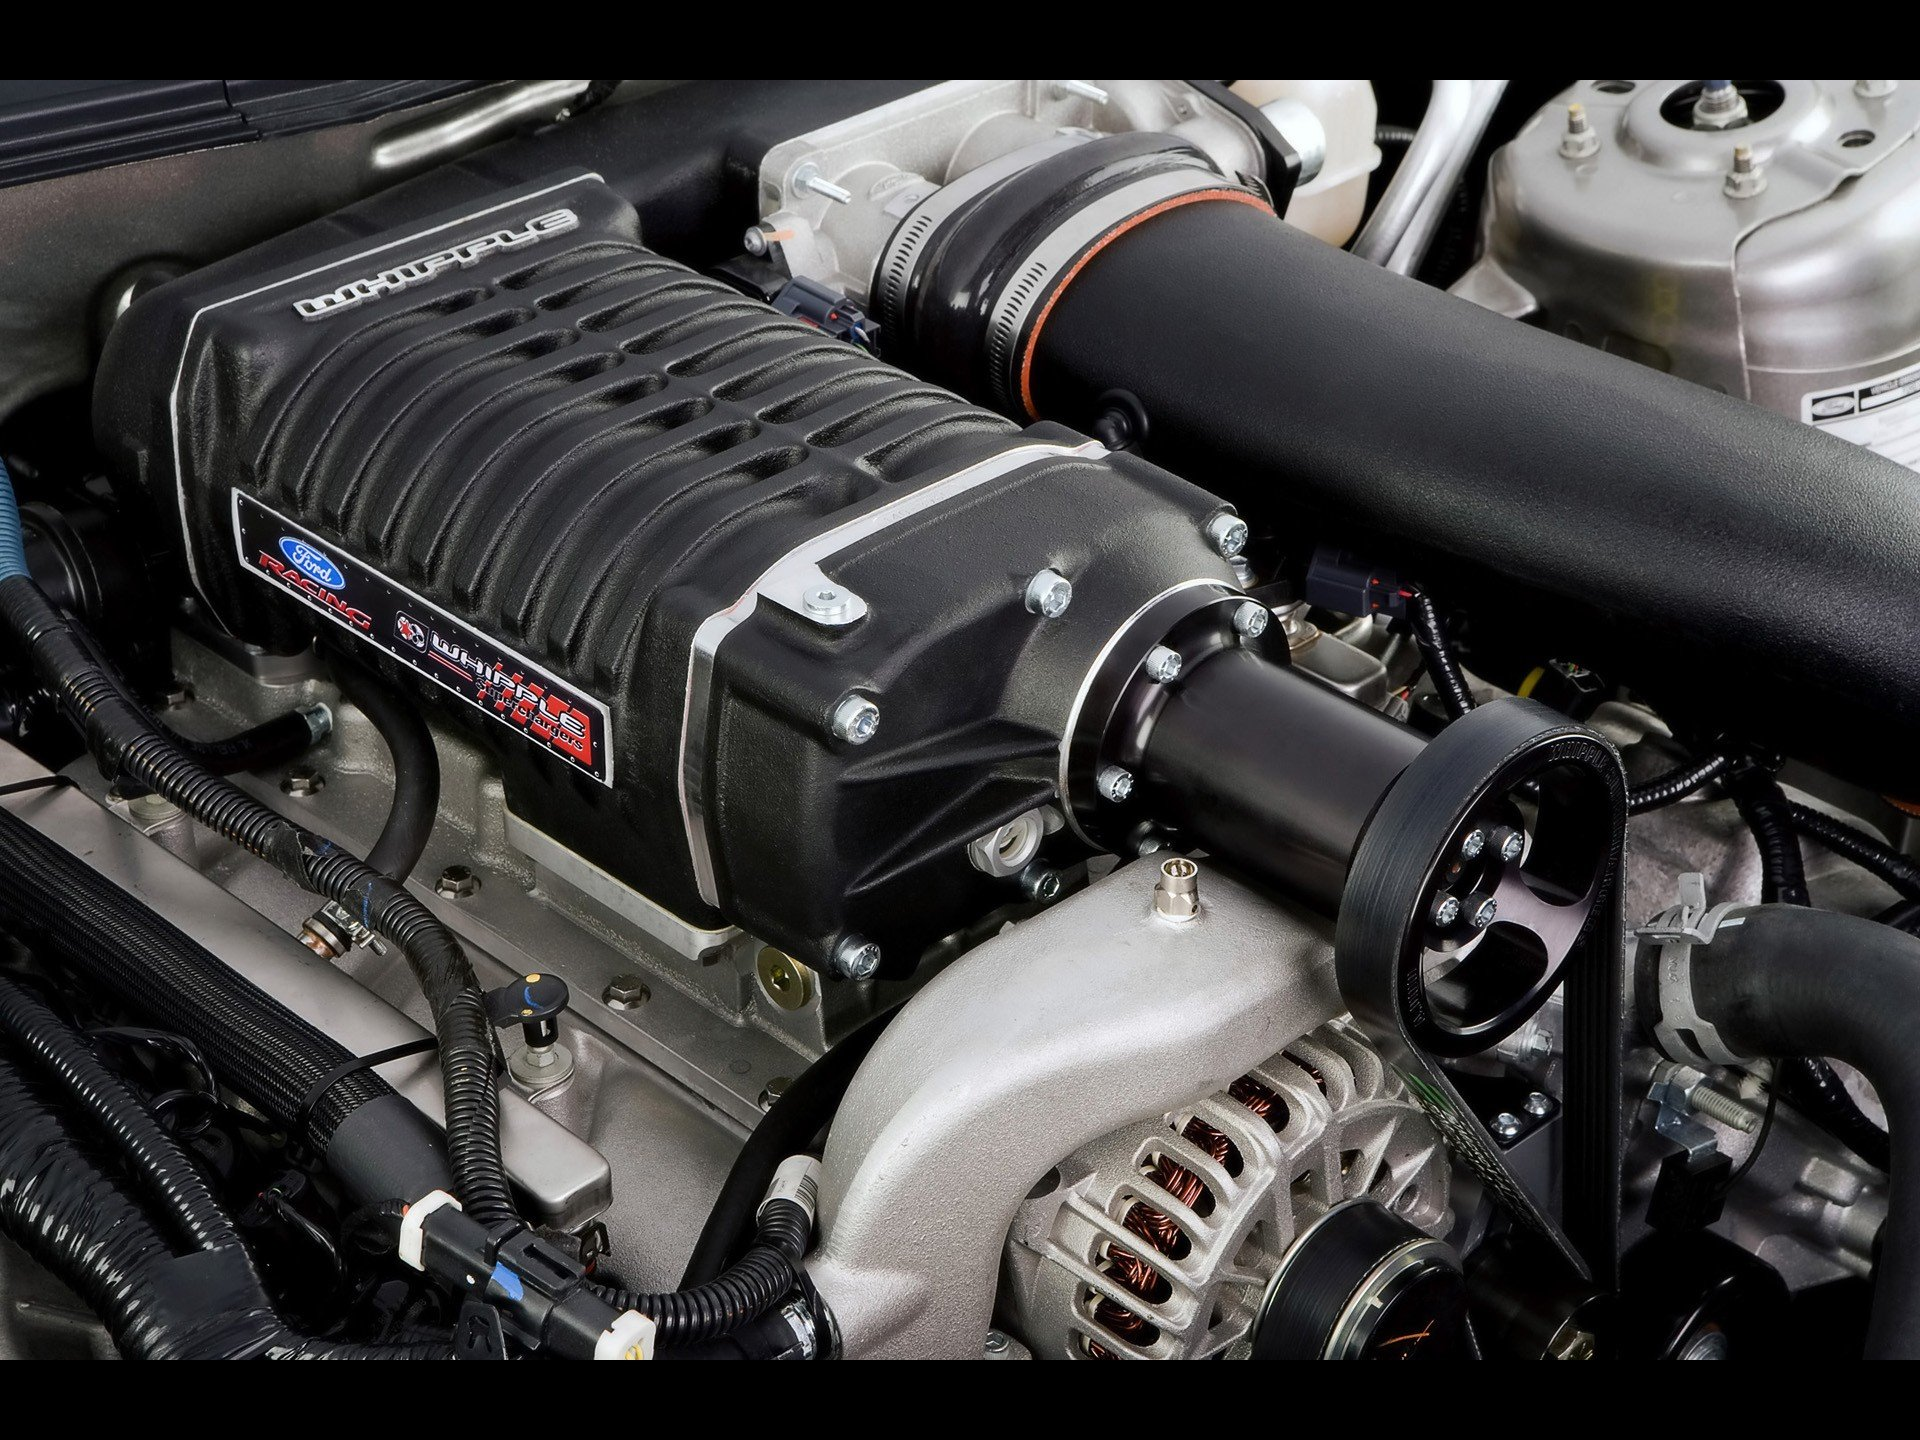 Best 54 Supercharged Wallpaper on HipWallpaper Supercharged 1920x1440